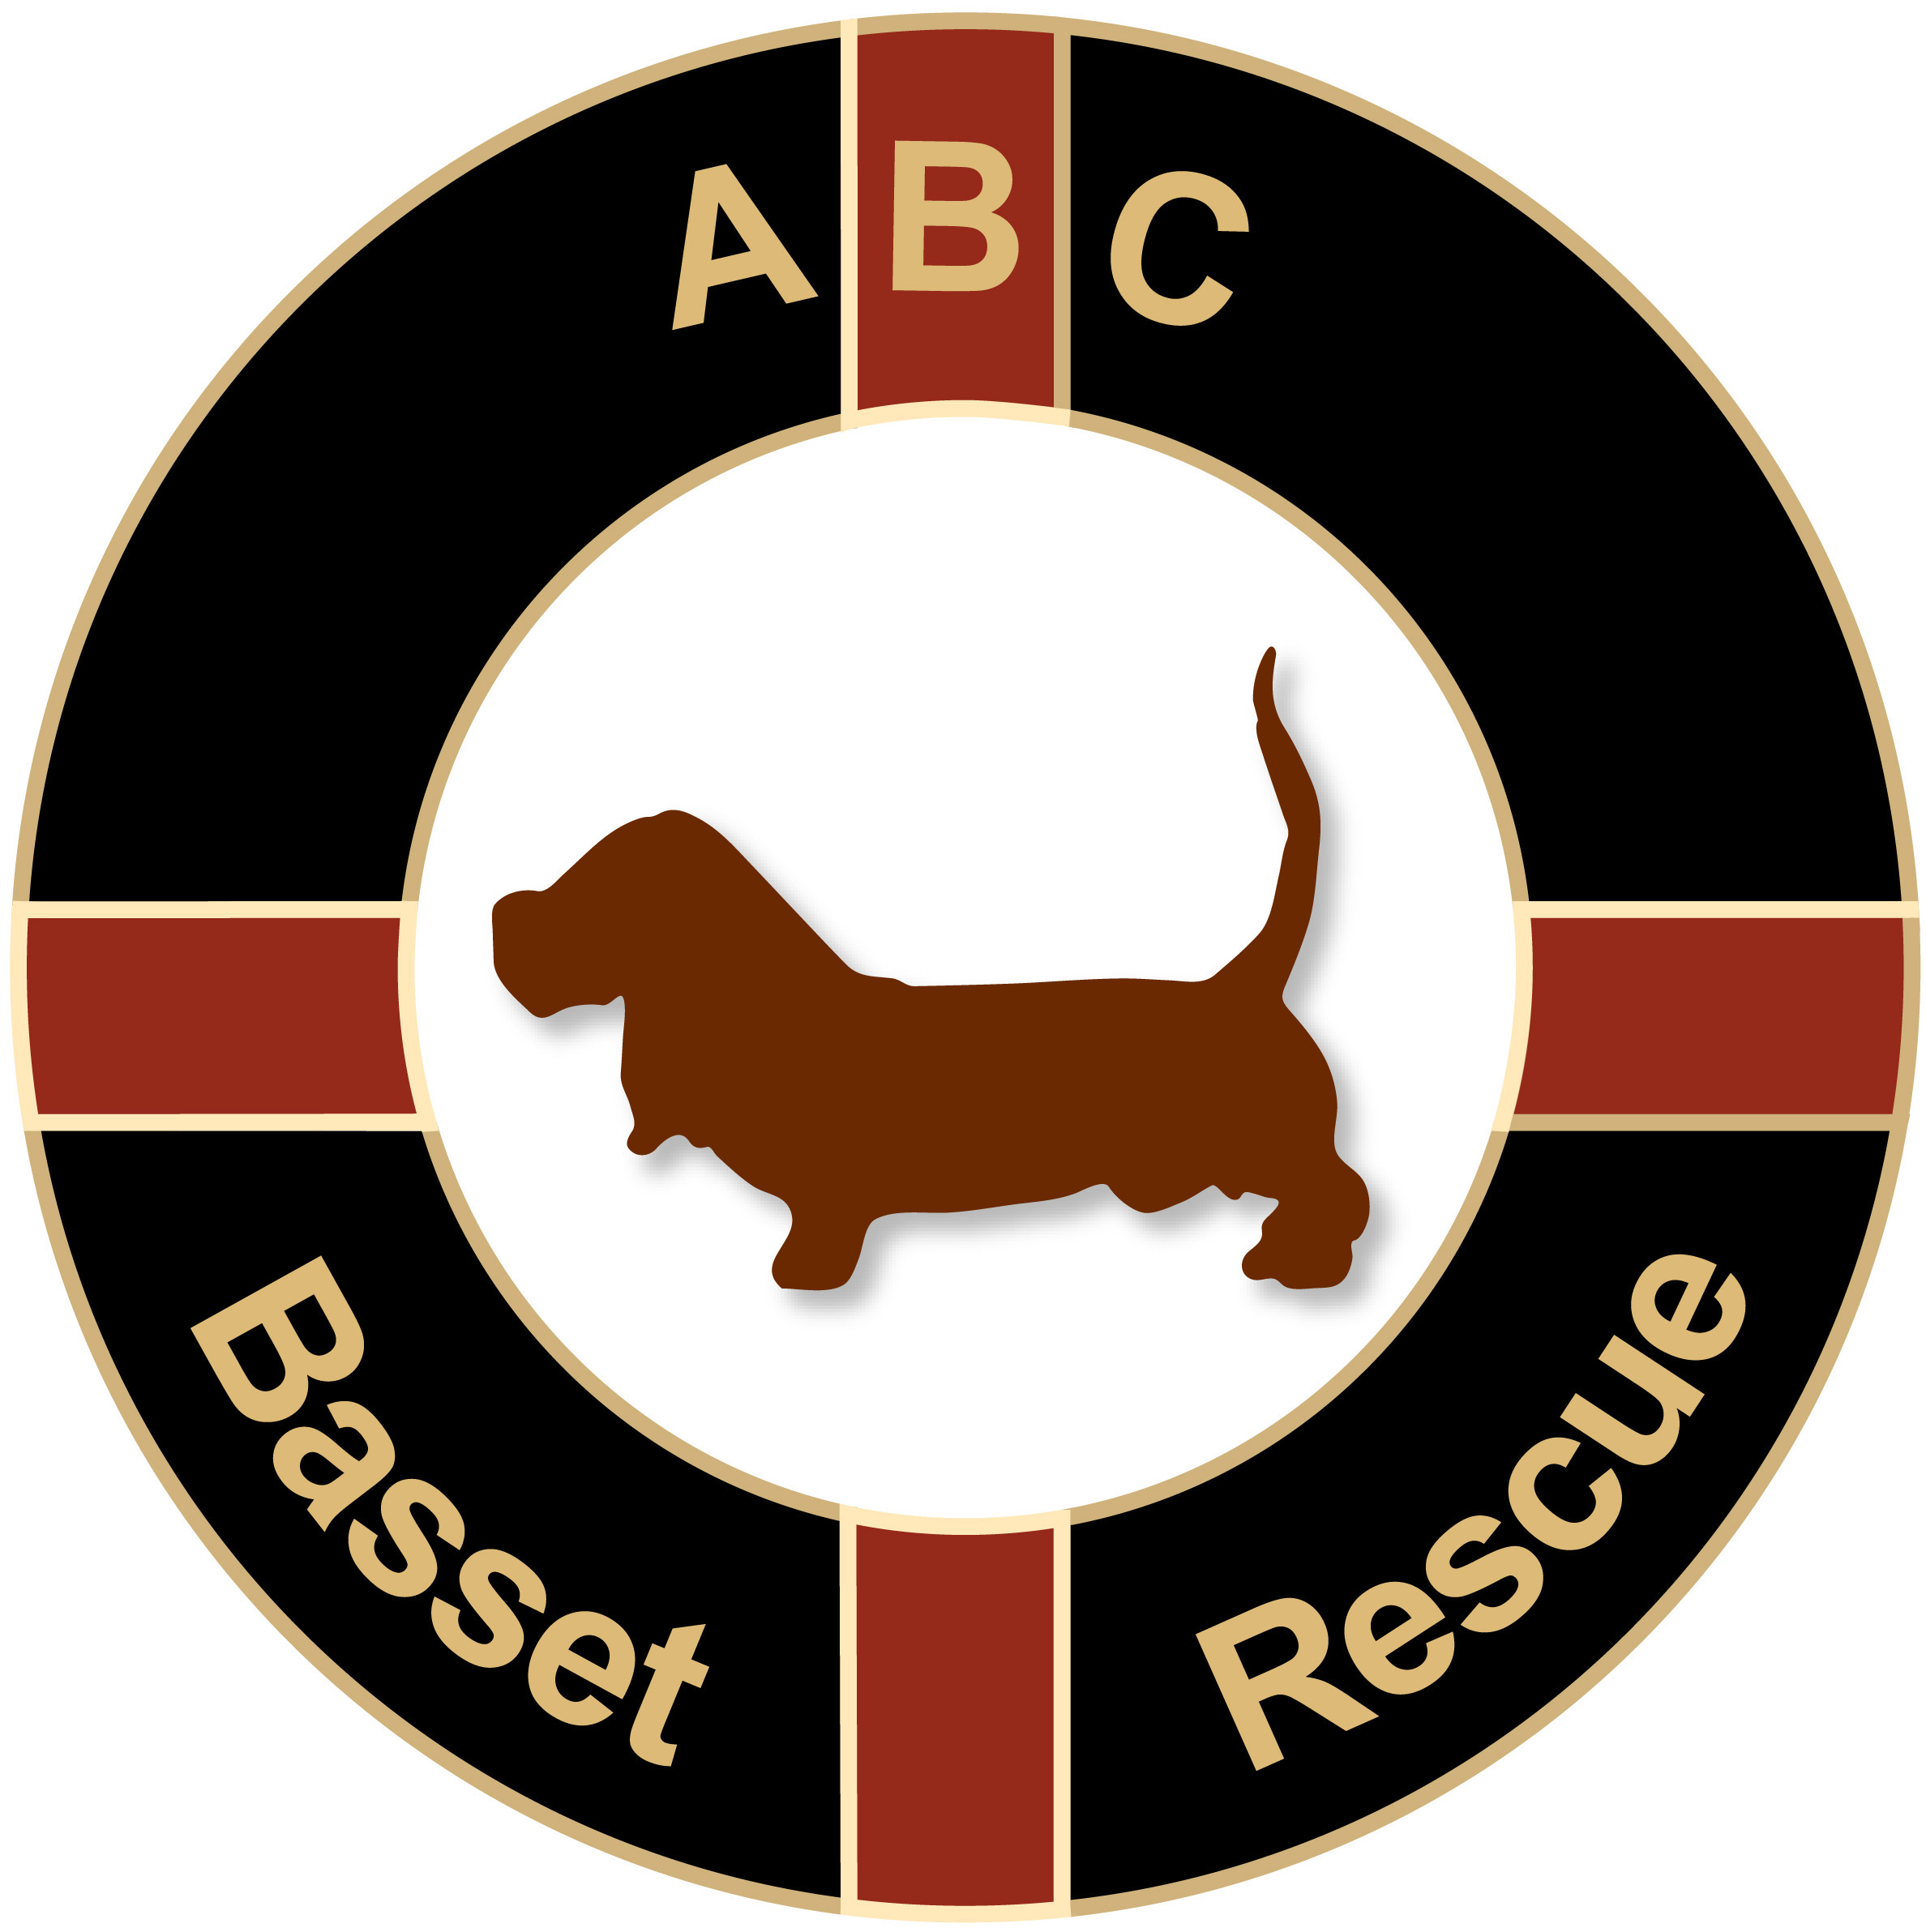 All Bassets Cherished Basset Hound Rescue, Inc.